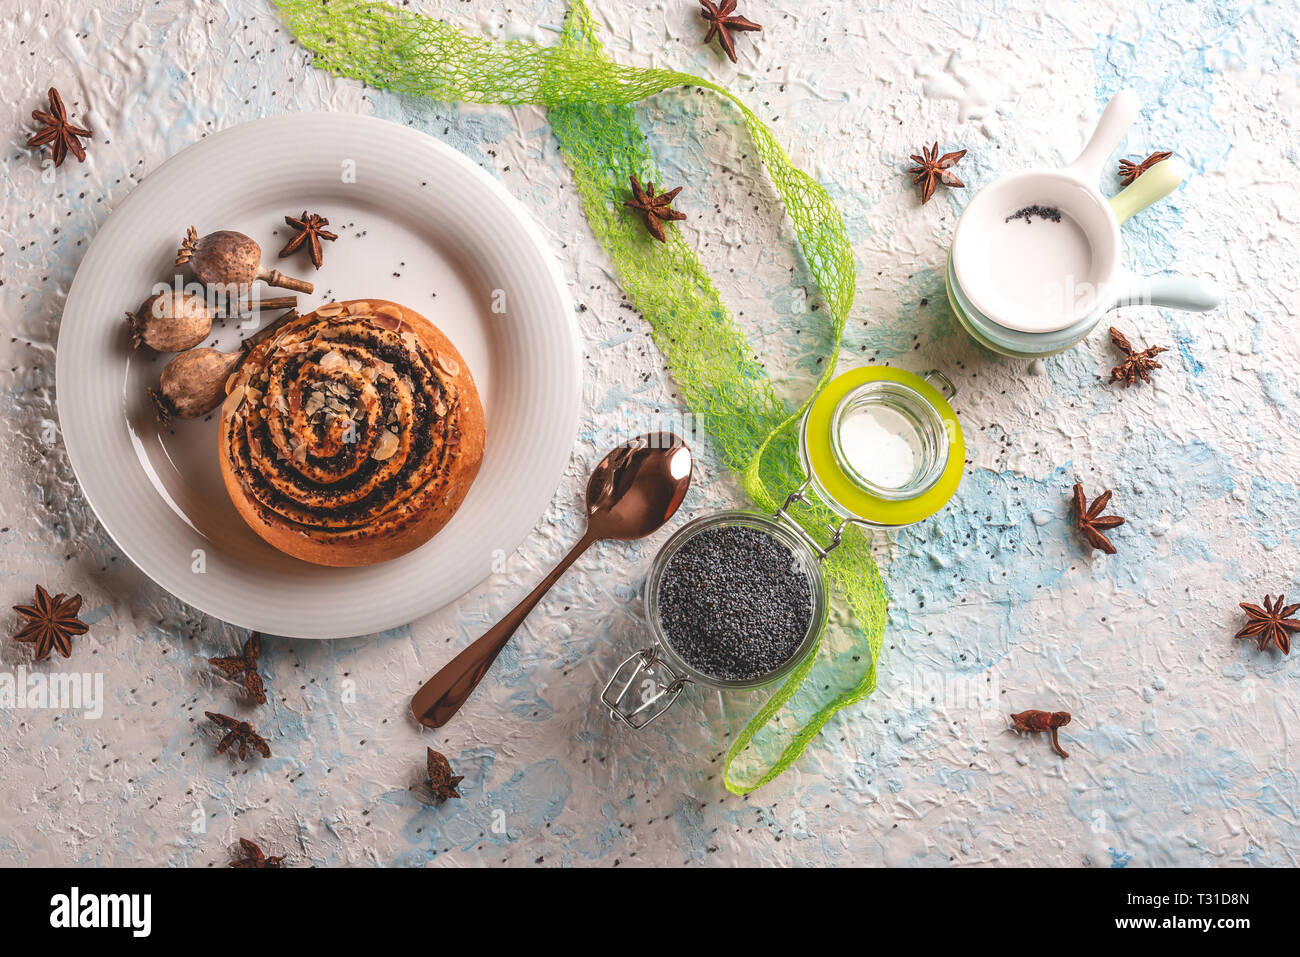 Horizontal photo with top view on sweet rolled bun stuffed by poppy. Bun is on white plate with few poppyheads. Glass gar with poppy seeds and stacked - Stock Image